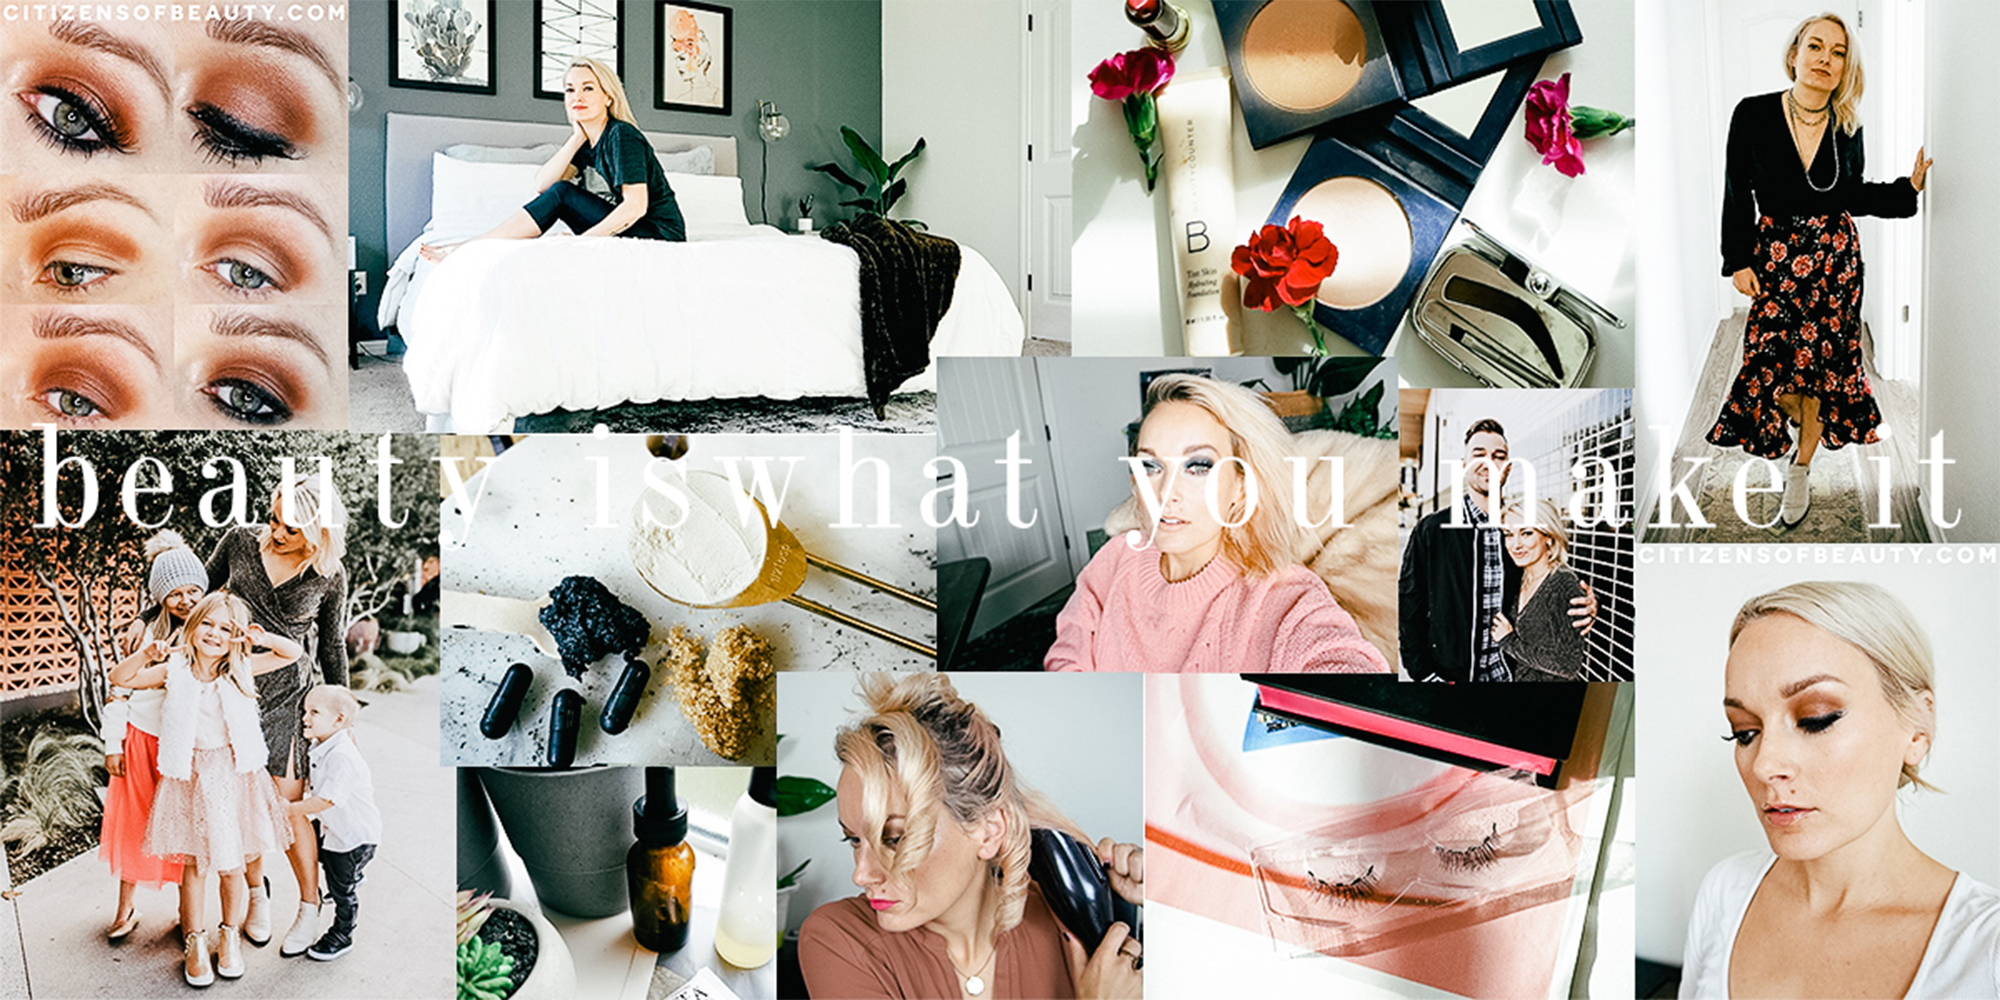 beauty and lifestyle blogger, Kendra stanton shares her makeup, beauty, skincare and style tips.